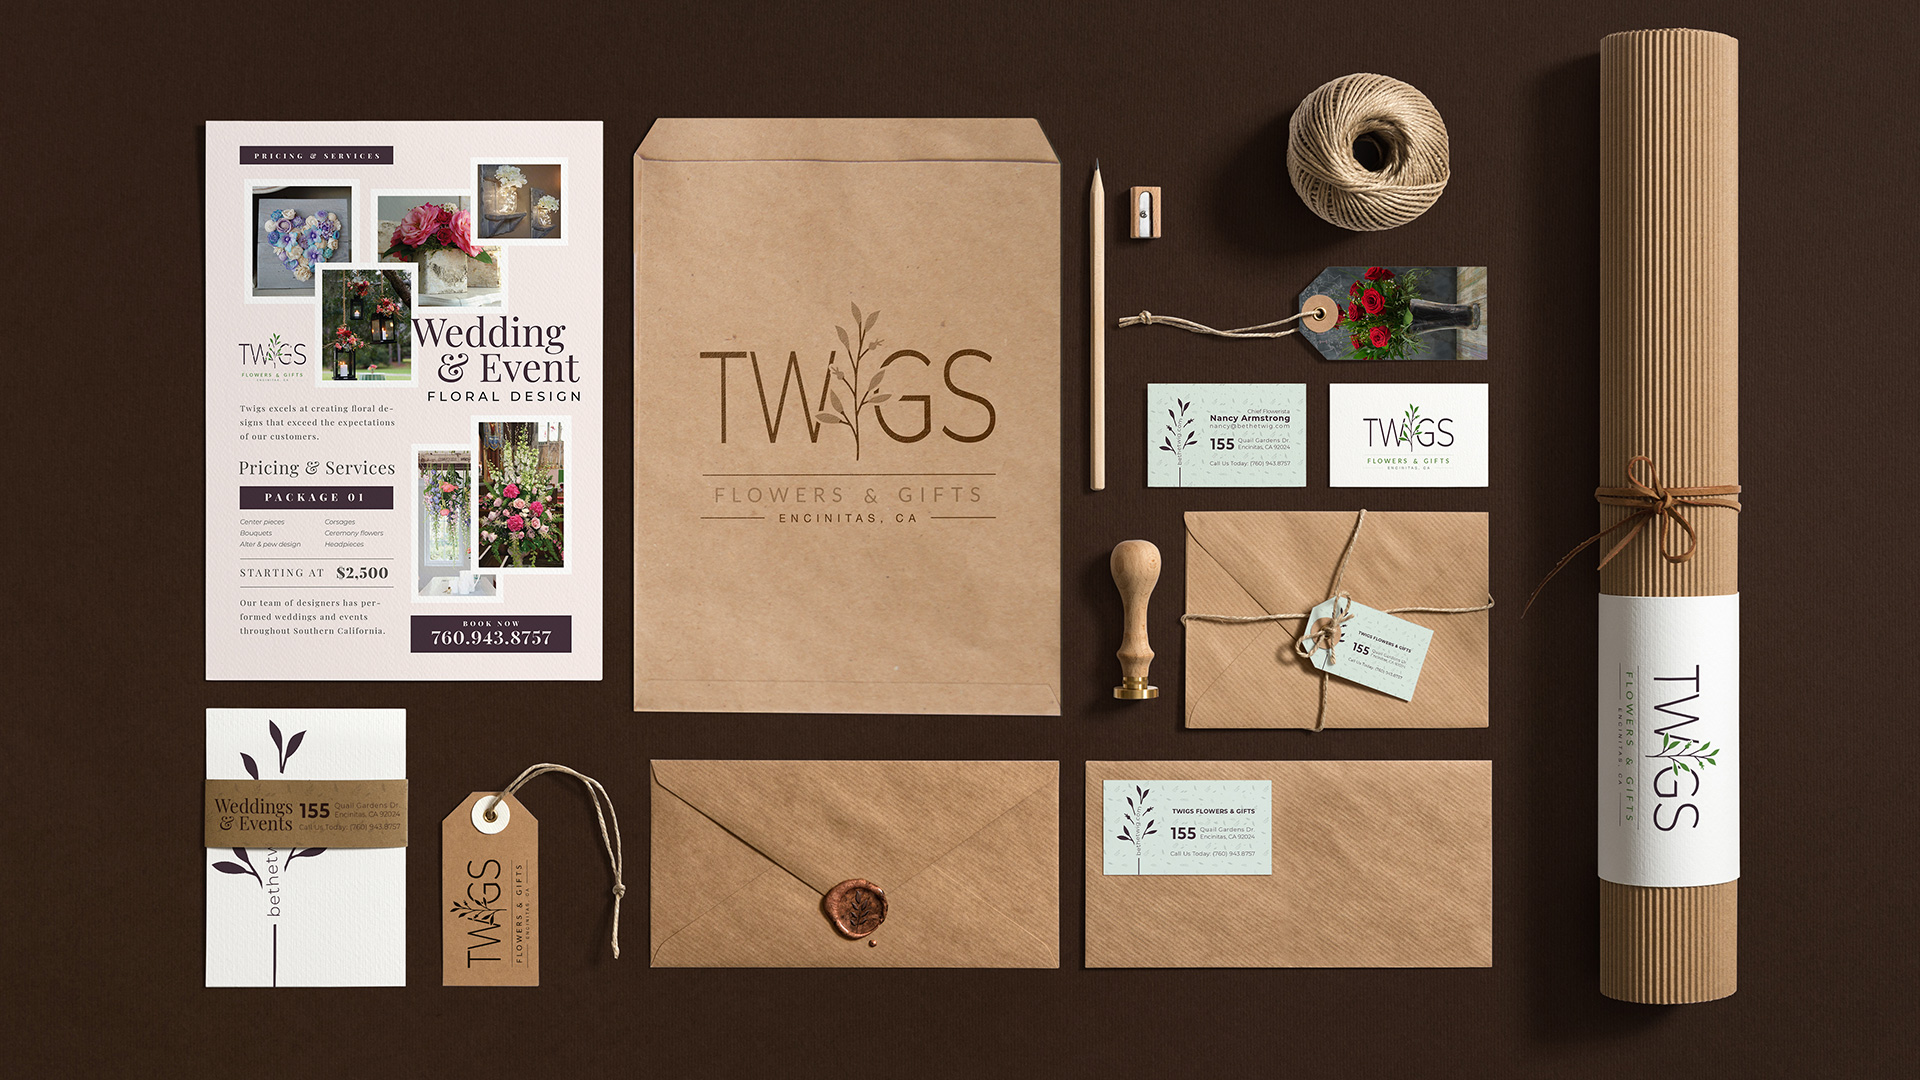 identity design stationery business cards tags twigs encinitas